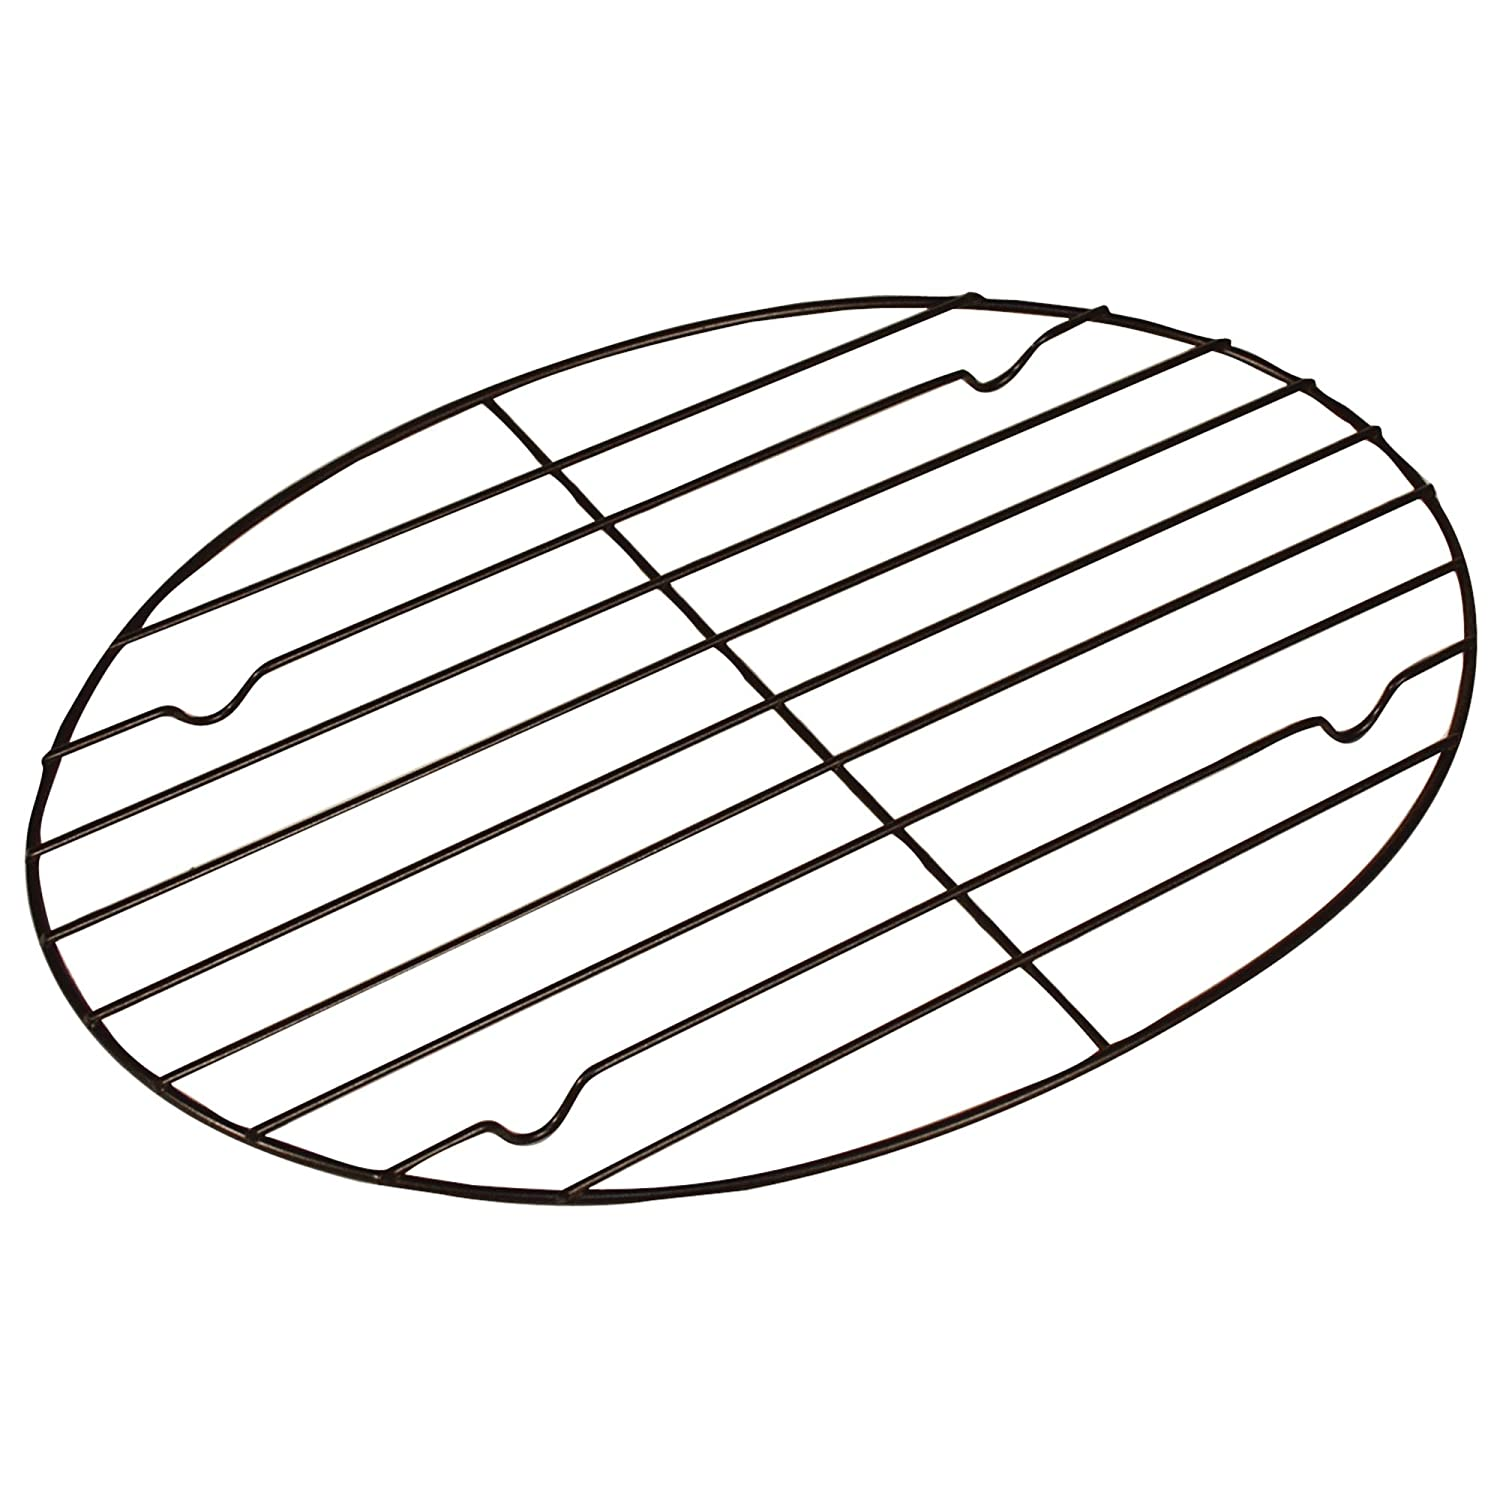 Fox Run 57213 Oval Roasting/Cooling Rack, Iron, Non-Stick, 11-Inch